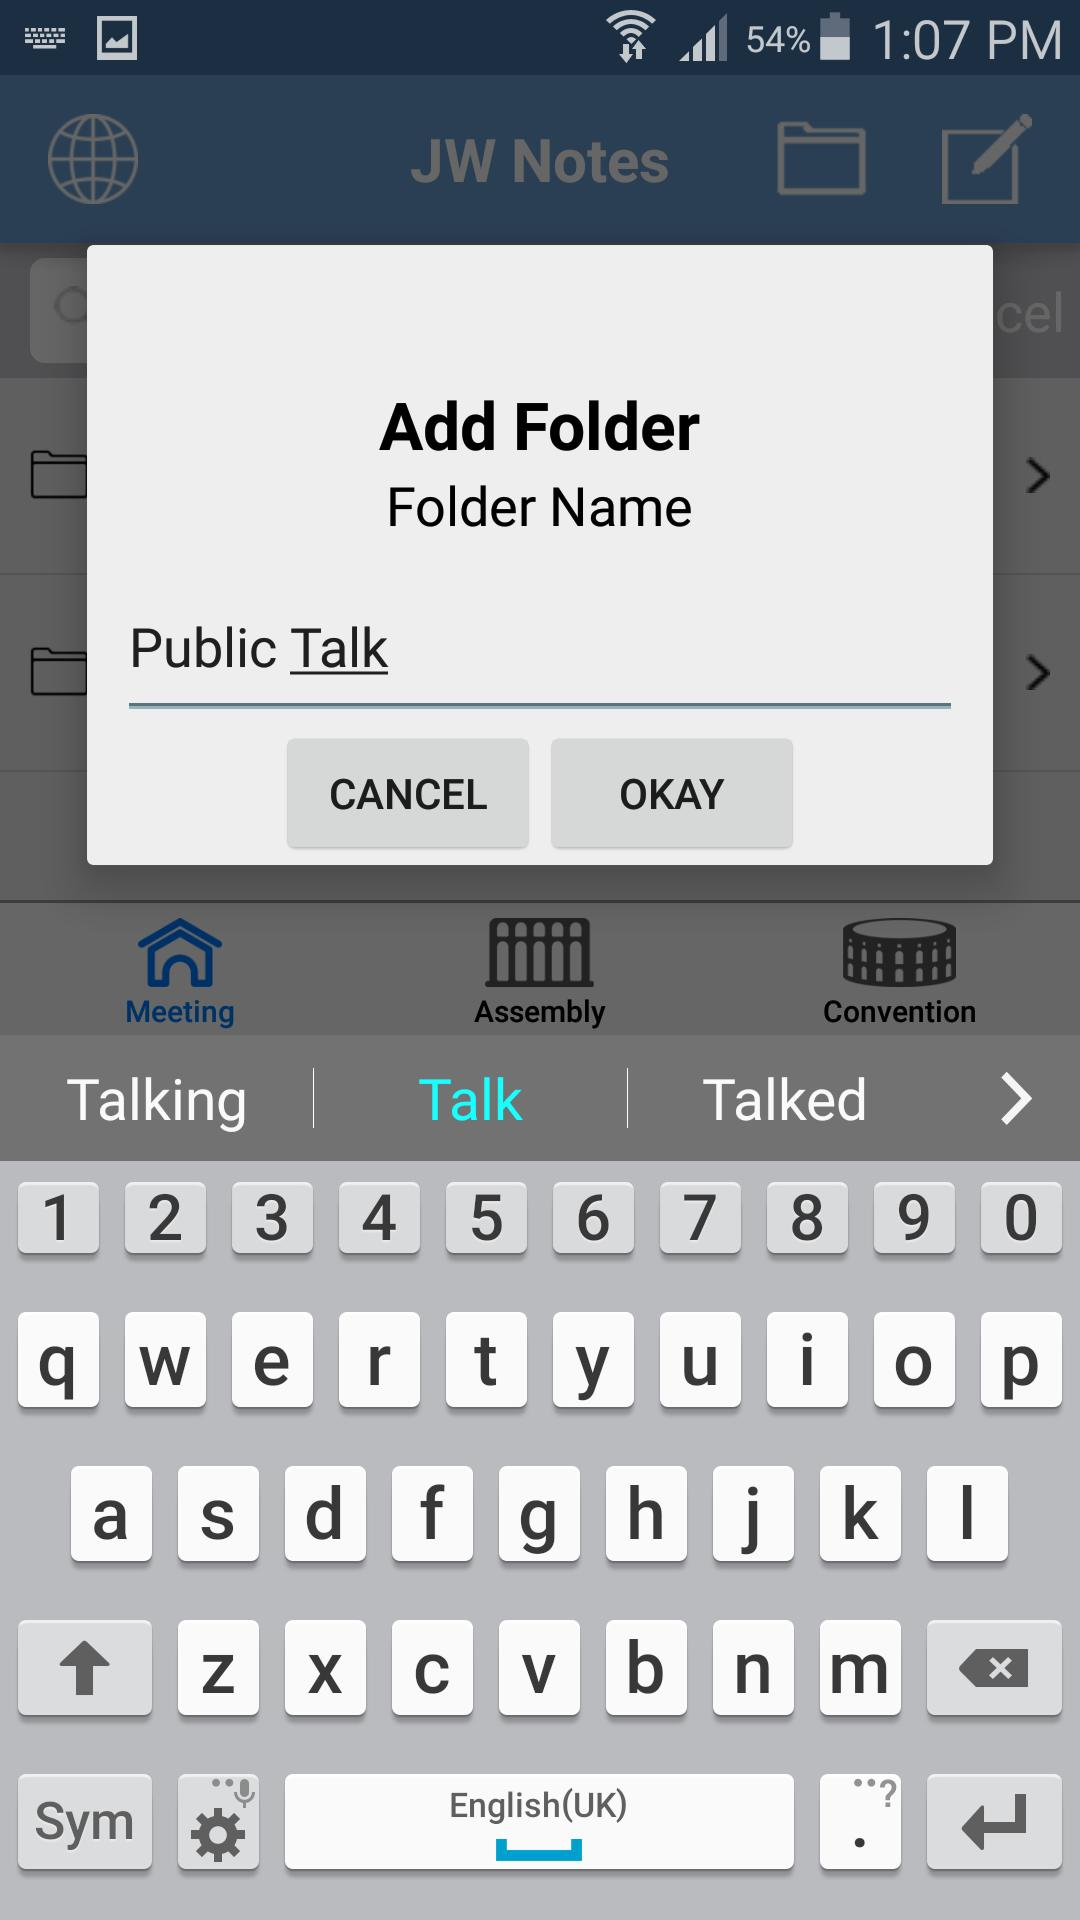 JW Notes for Android - APK Download